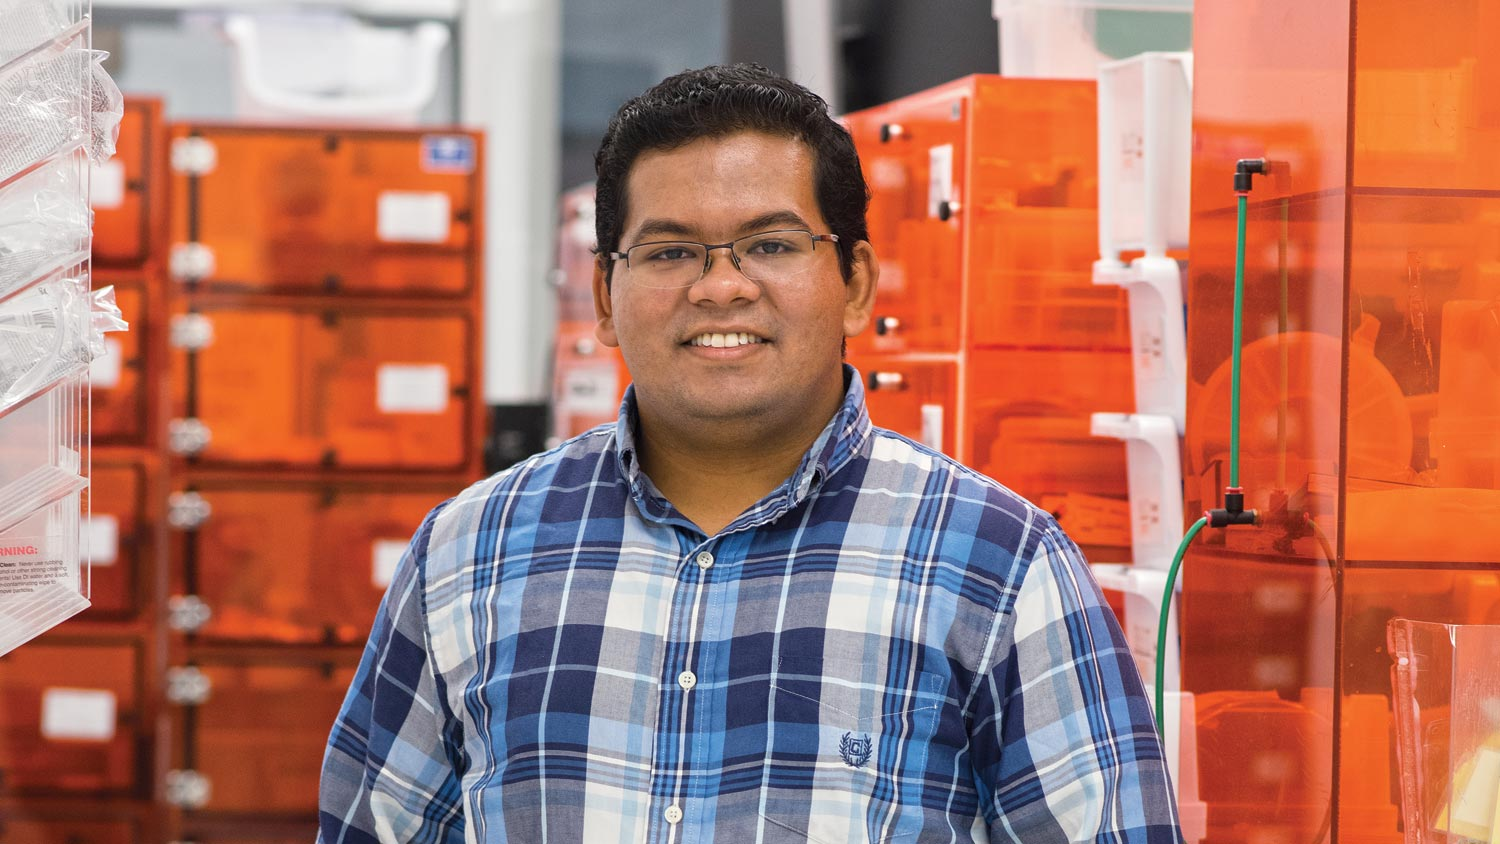 S M Huq, a microelectronic engineering major, stands in a lab with several transparent orange boxes.